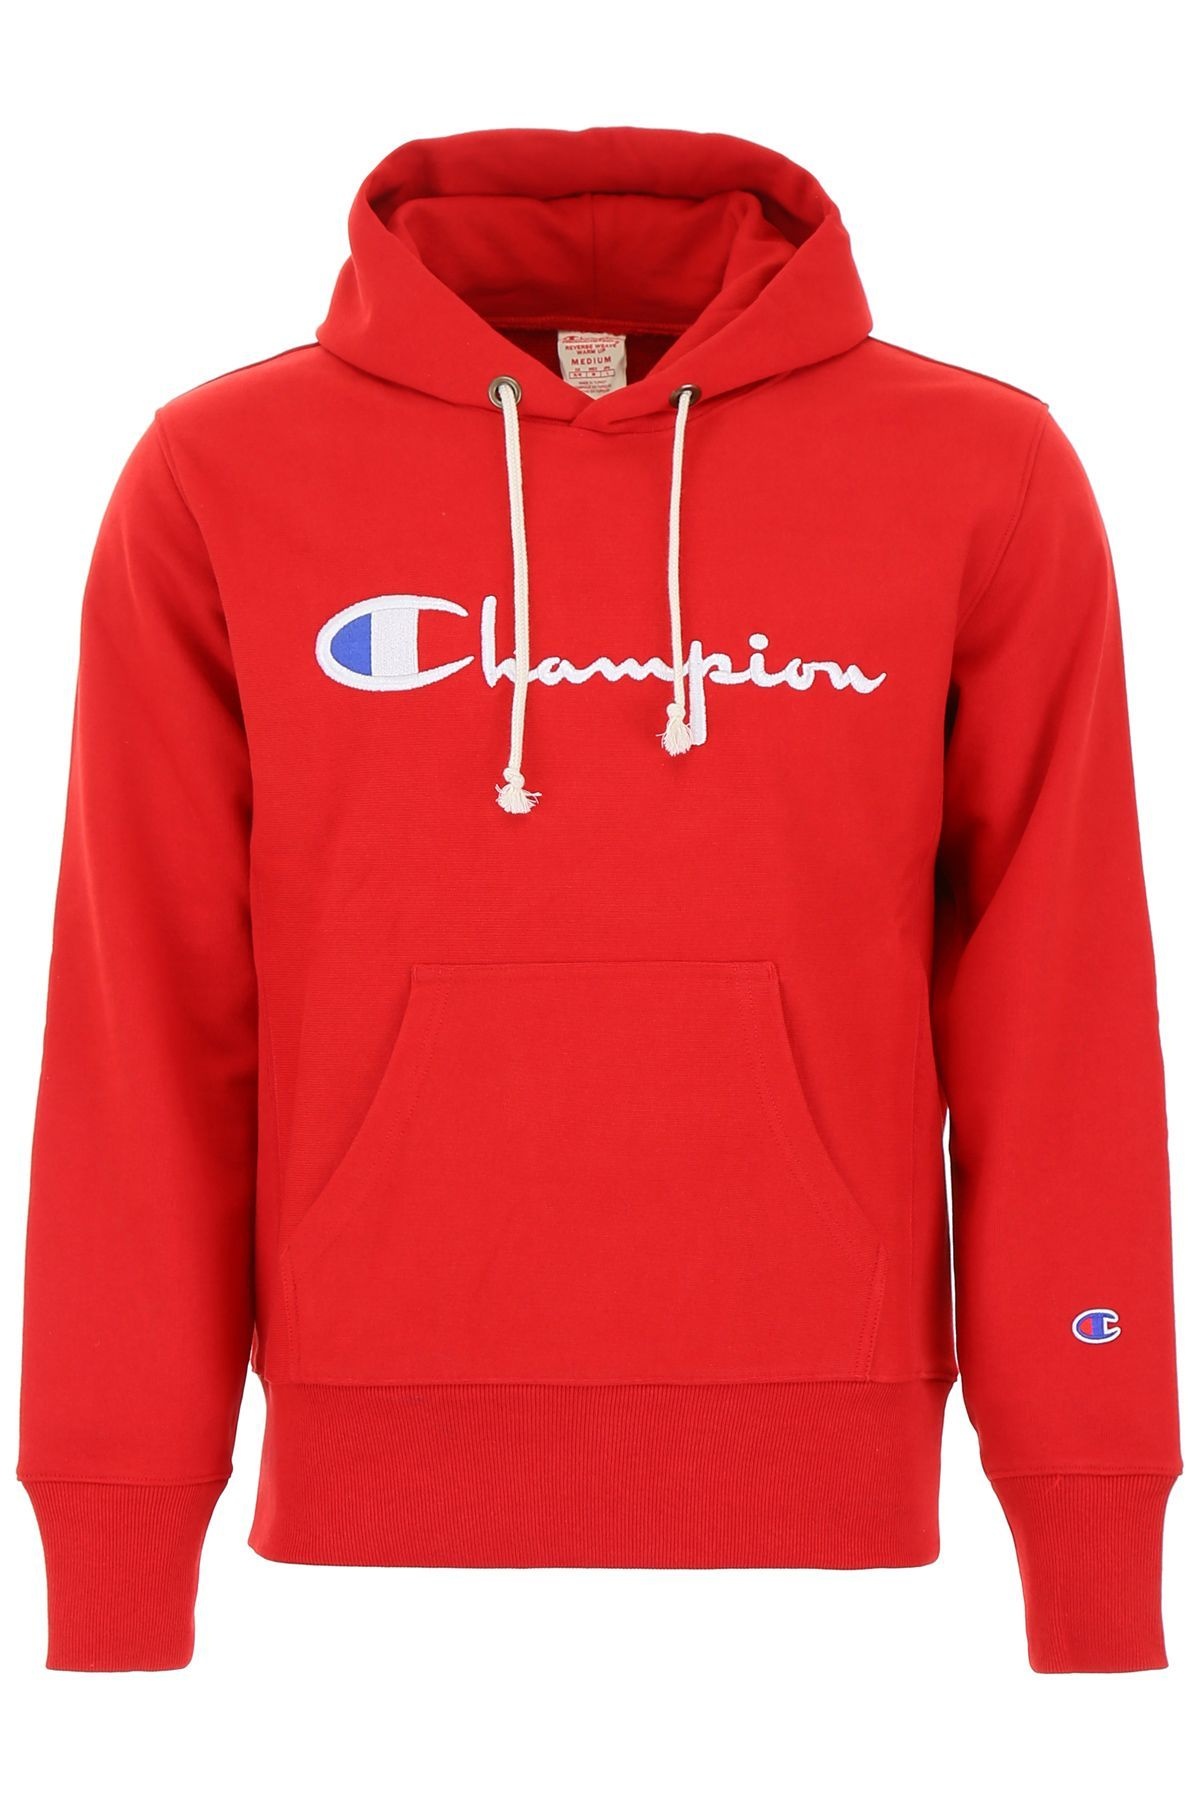 CHAMPION LARGE LOGO HOODIE. champion cloth in 2020